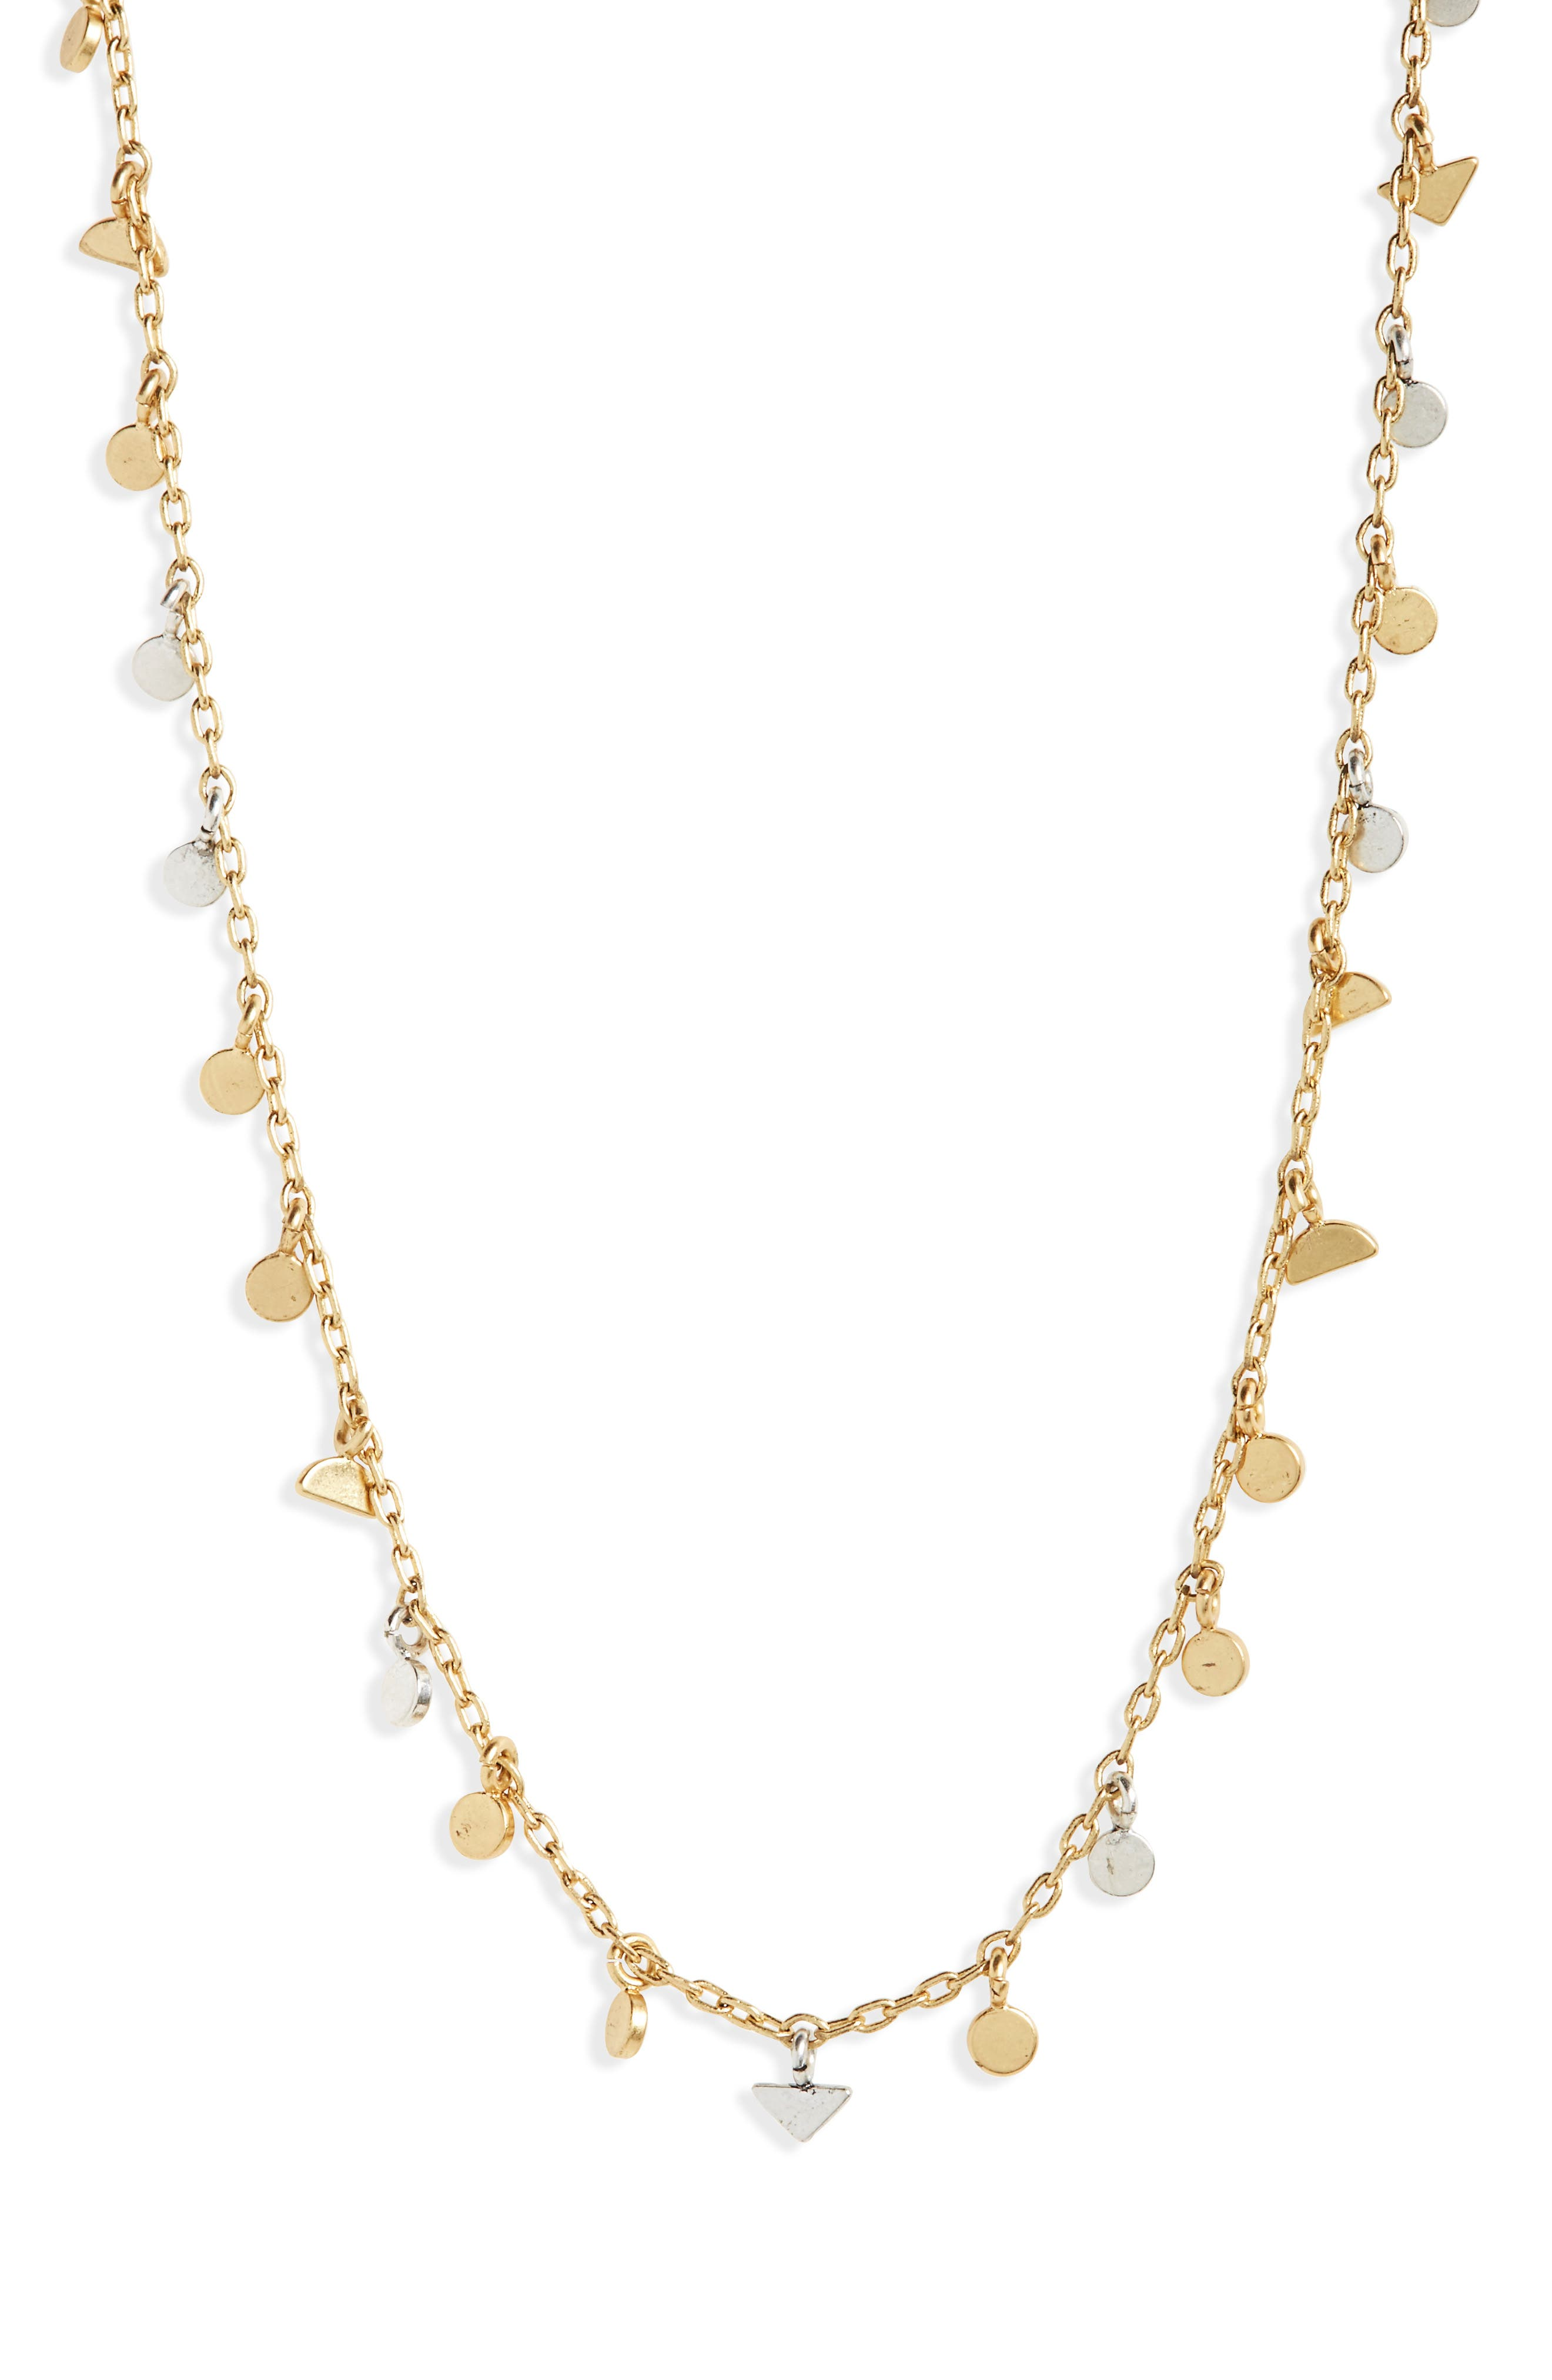 Delicate Geo Charm Choker Necklace,                             Main thumbnail 1, color,                             710